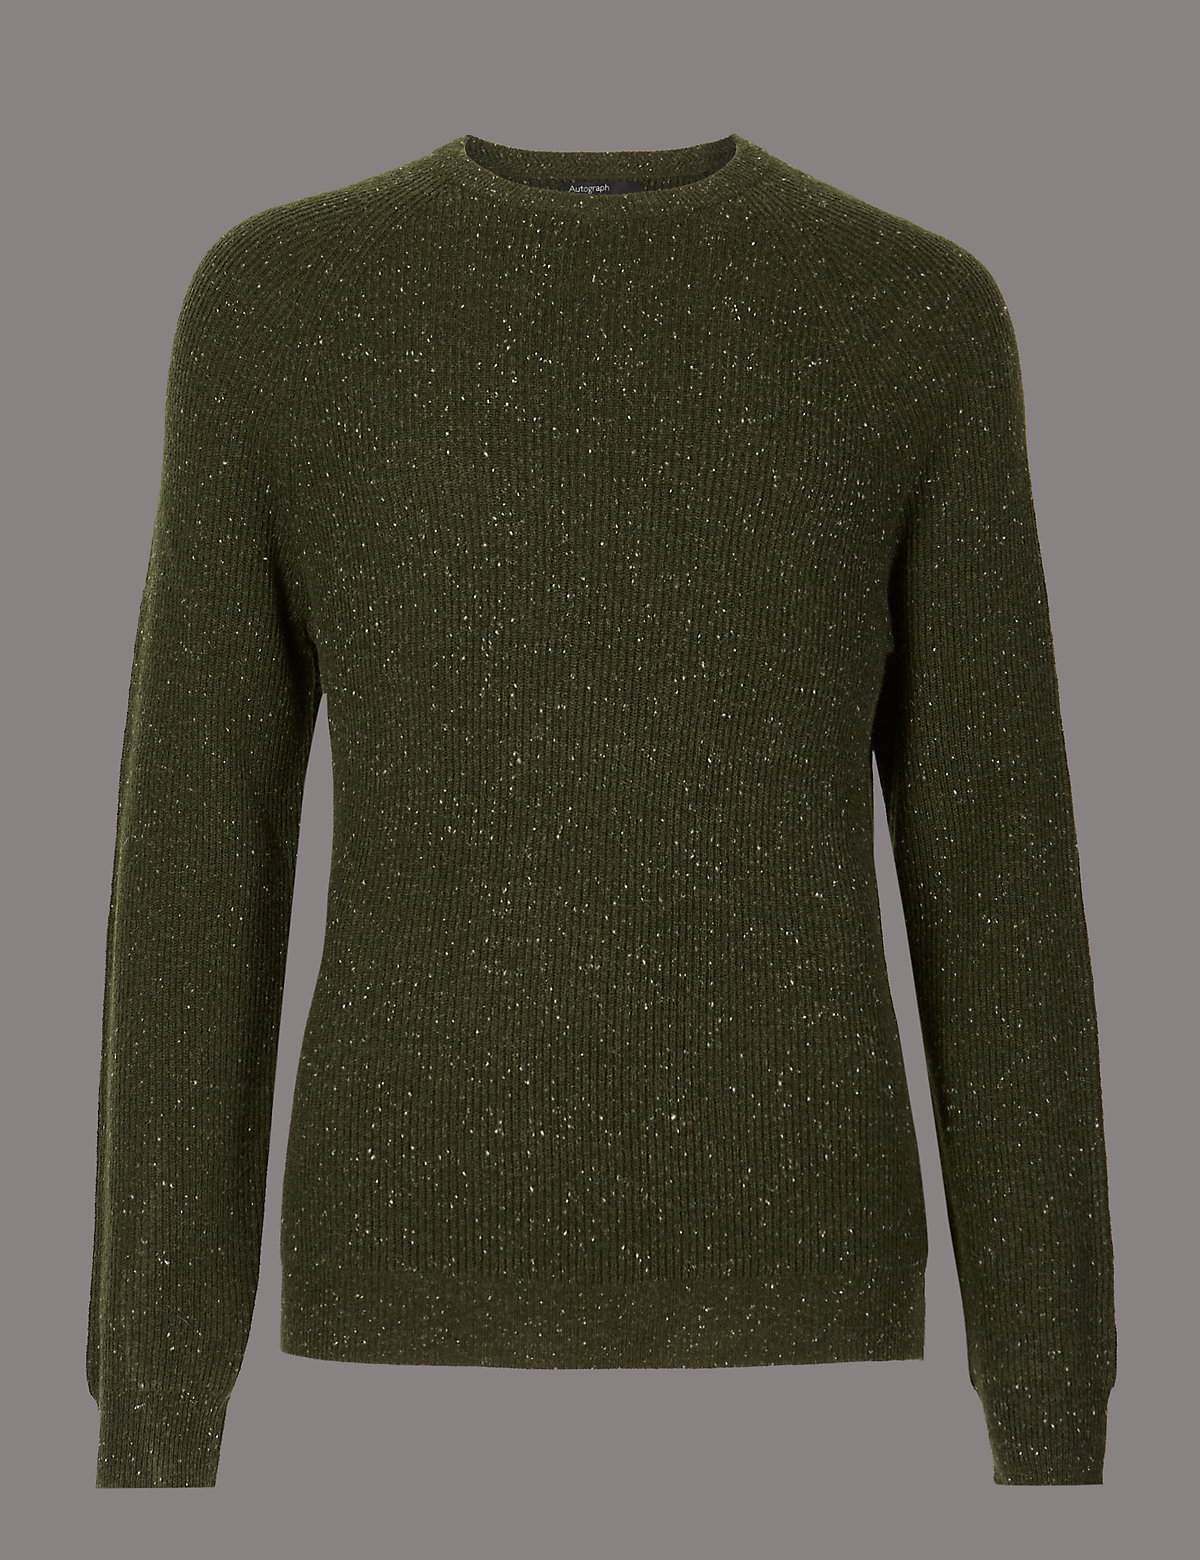 Marks & Spencer Khaki Merino Slim Fit Nep Jumper with Cashmere